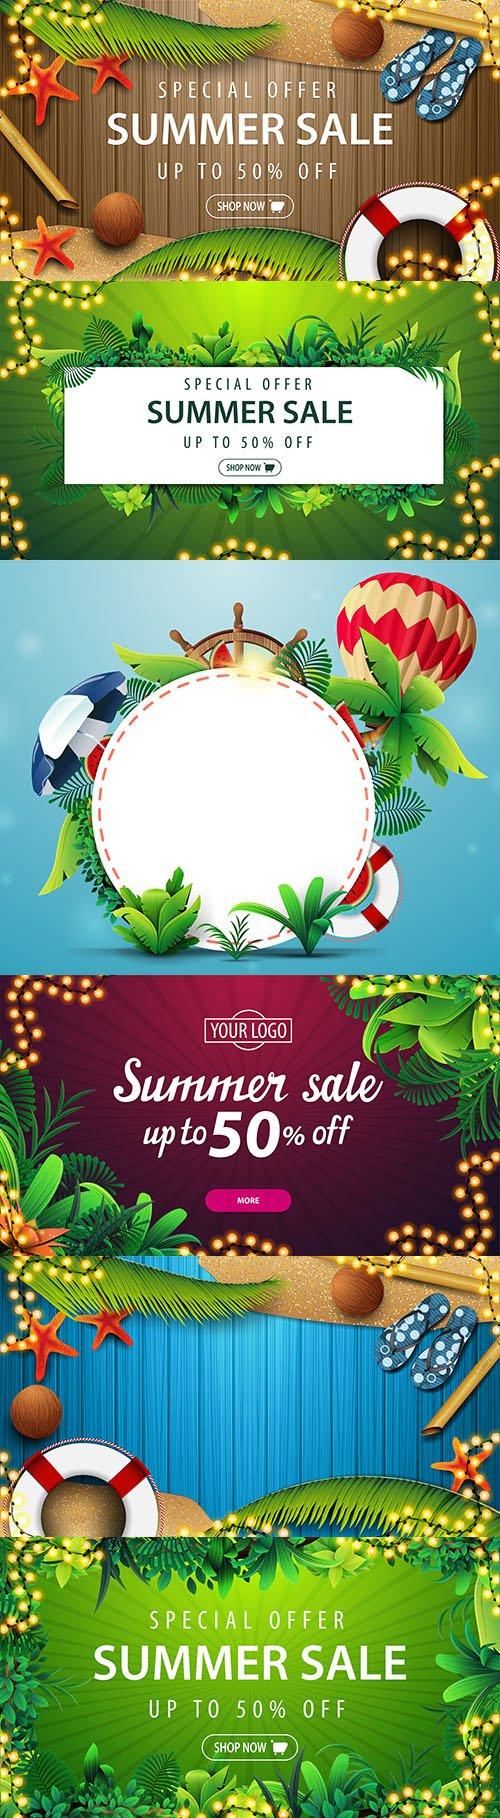 Special offer summer sale discount banner from tropical leaves